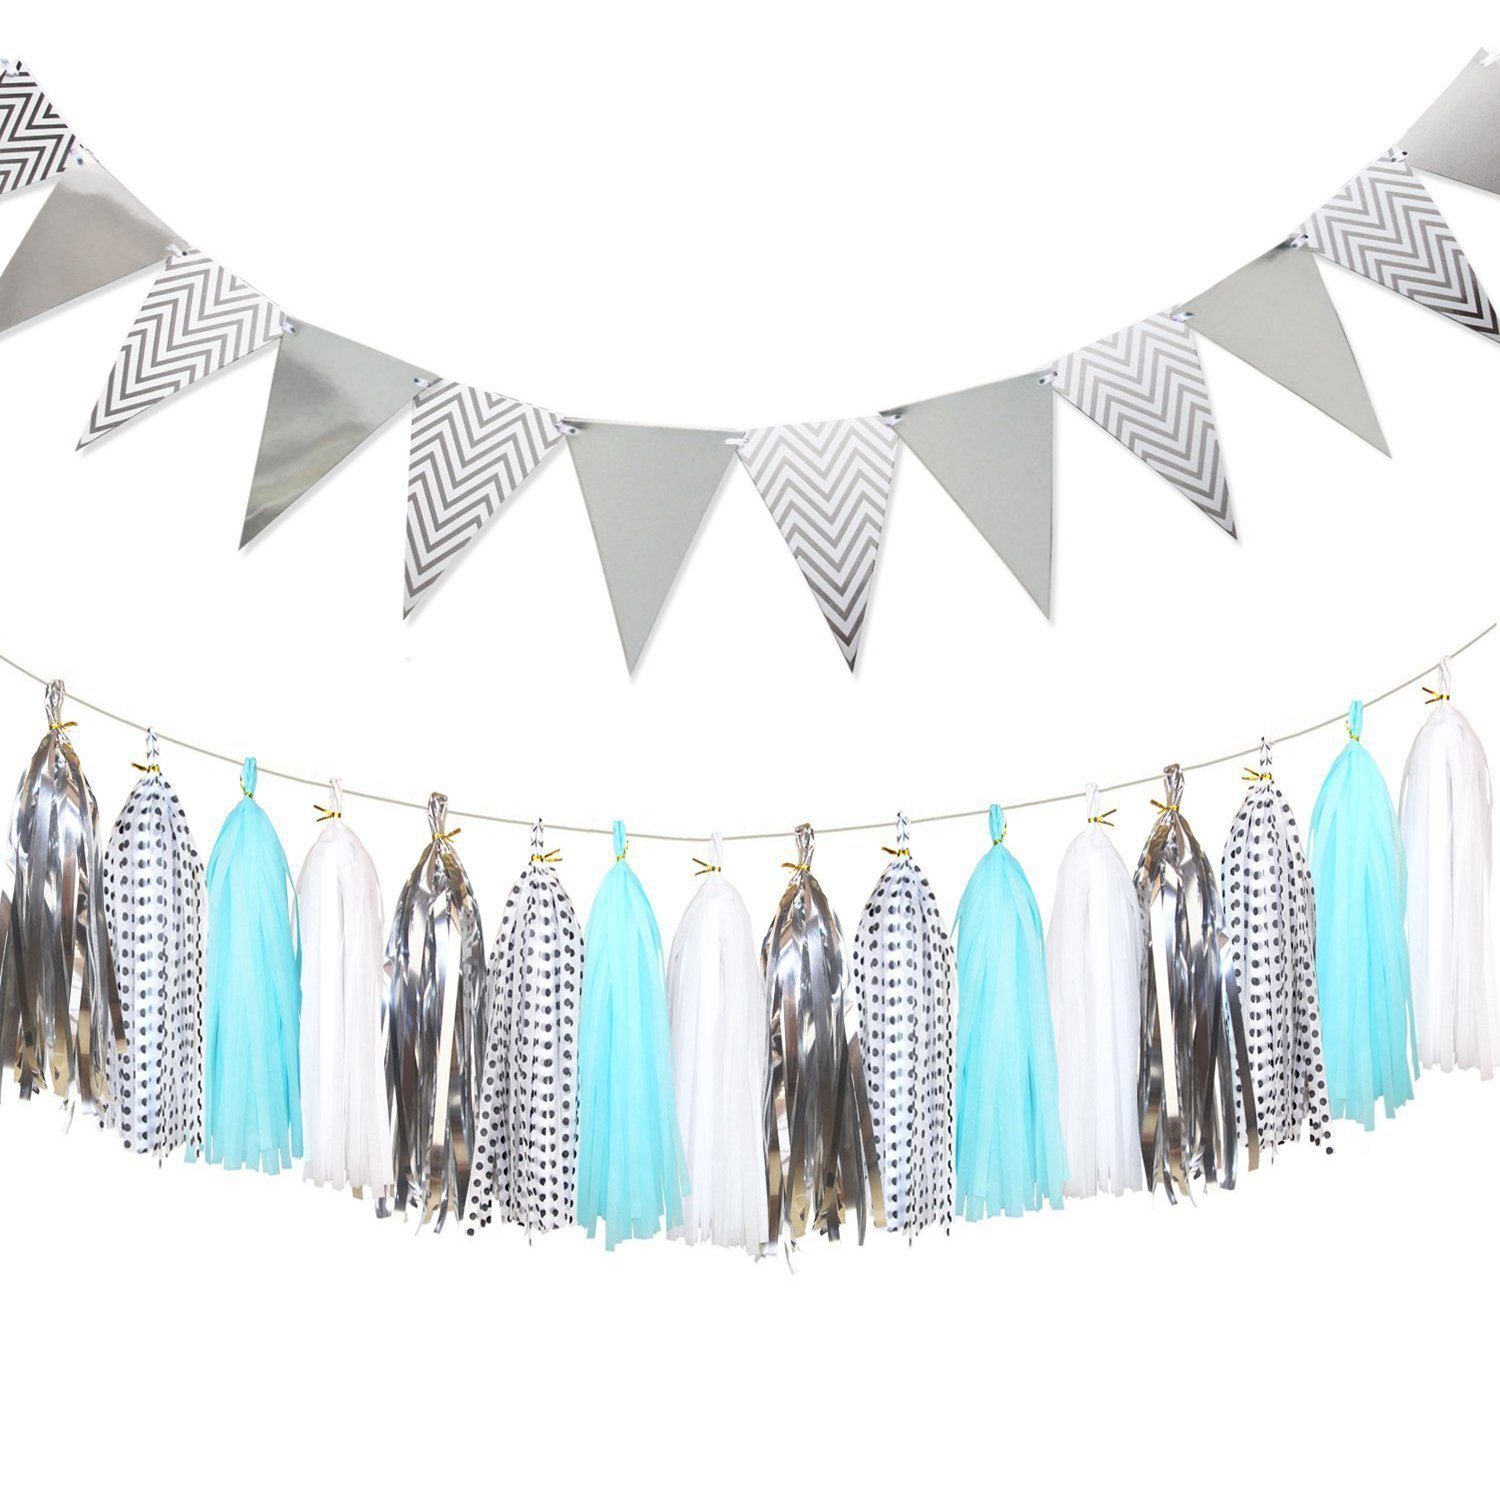 Shiny Paper Pennant Banner Triangle Flag Bunting 8.2 Feet and Tissue Paper Tassels Garland 20 pcs for Bridal Shower, Birthday Party, Home Wall Decoration, Silver+Blue+White